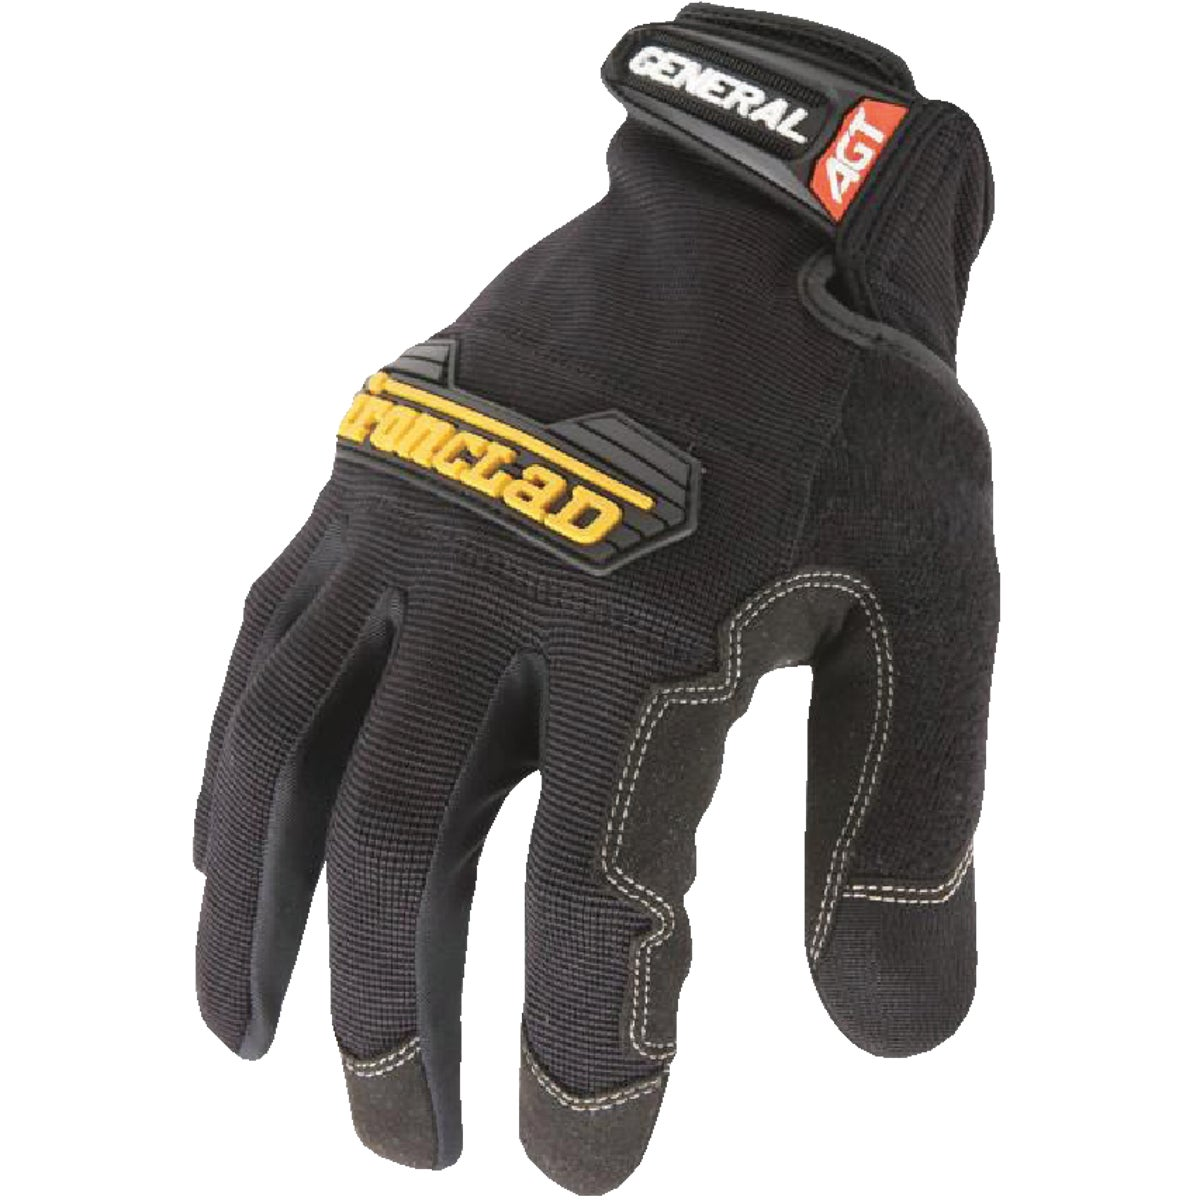 MED GEN UTILITY GLOVE - GUG-03-M by Ironclad Performance